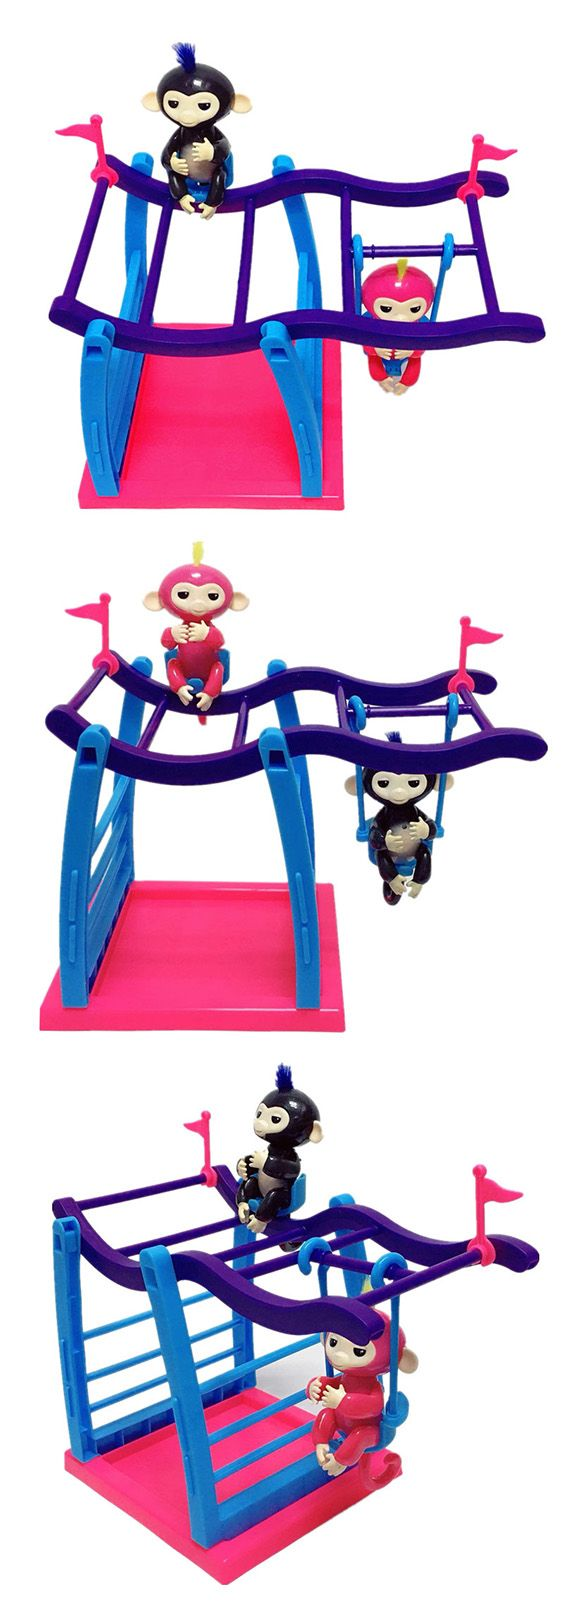 Fingerlings Movement Support Climbing Stand Swing Playset